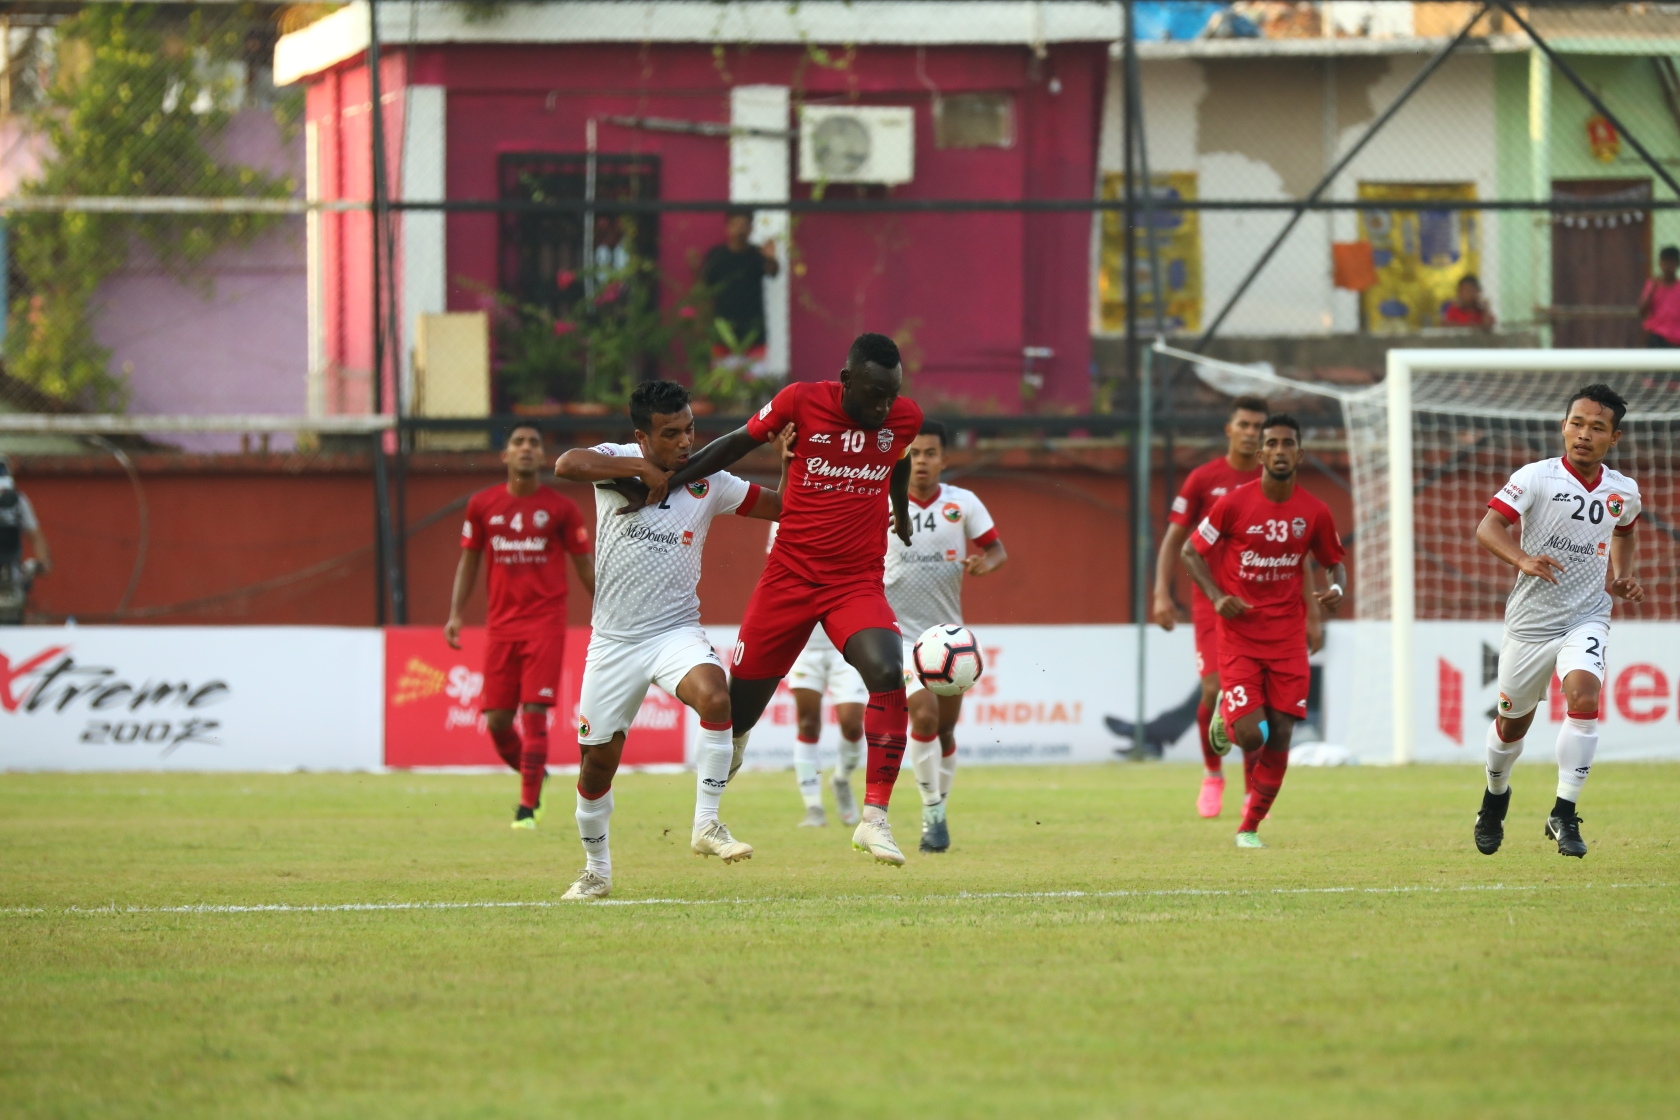 Churchill Brothers showed no mercy against a young and all-Indian Shillong Lajong side